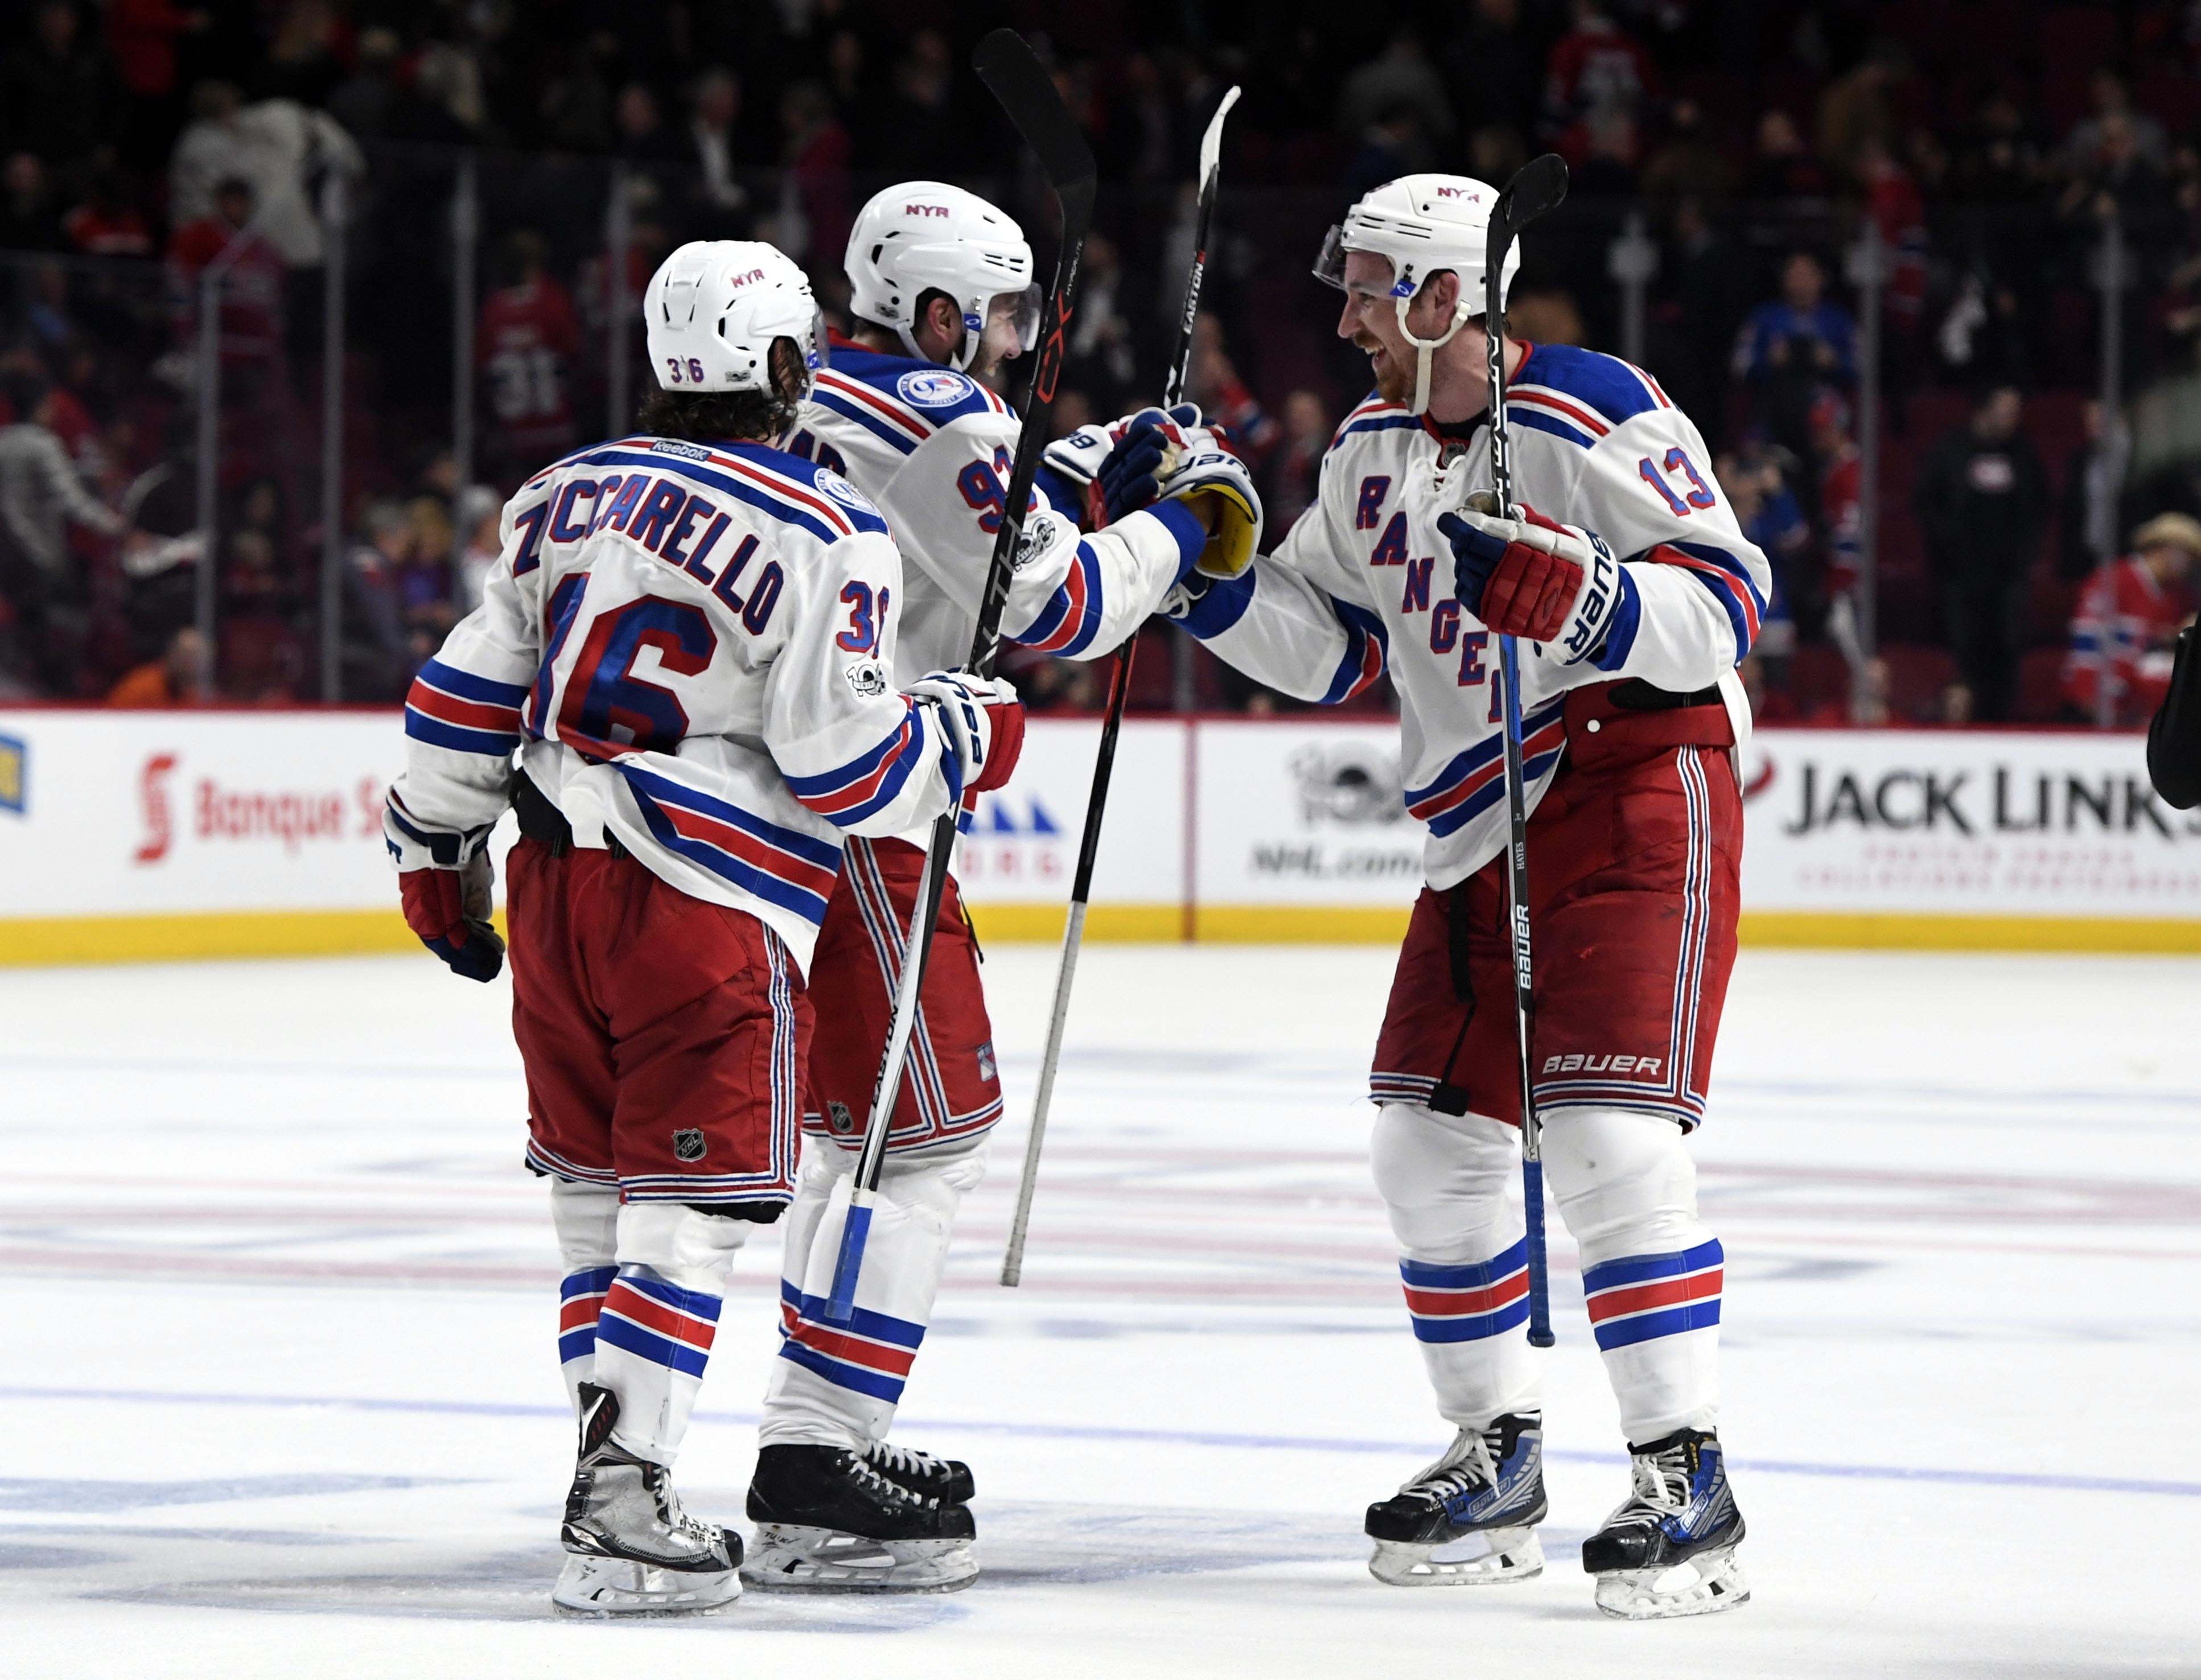 10022754-nhl-stanley-cup-playoffs-new-york-rangers-at-montreal-canadiens